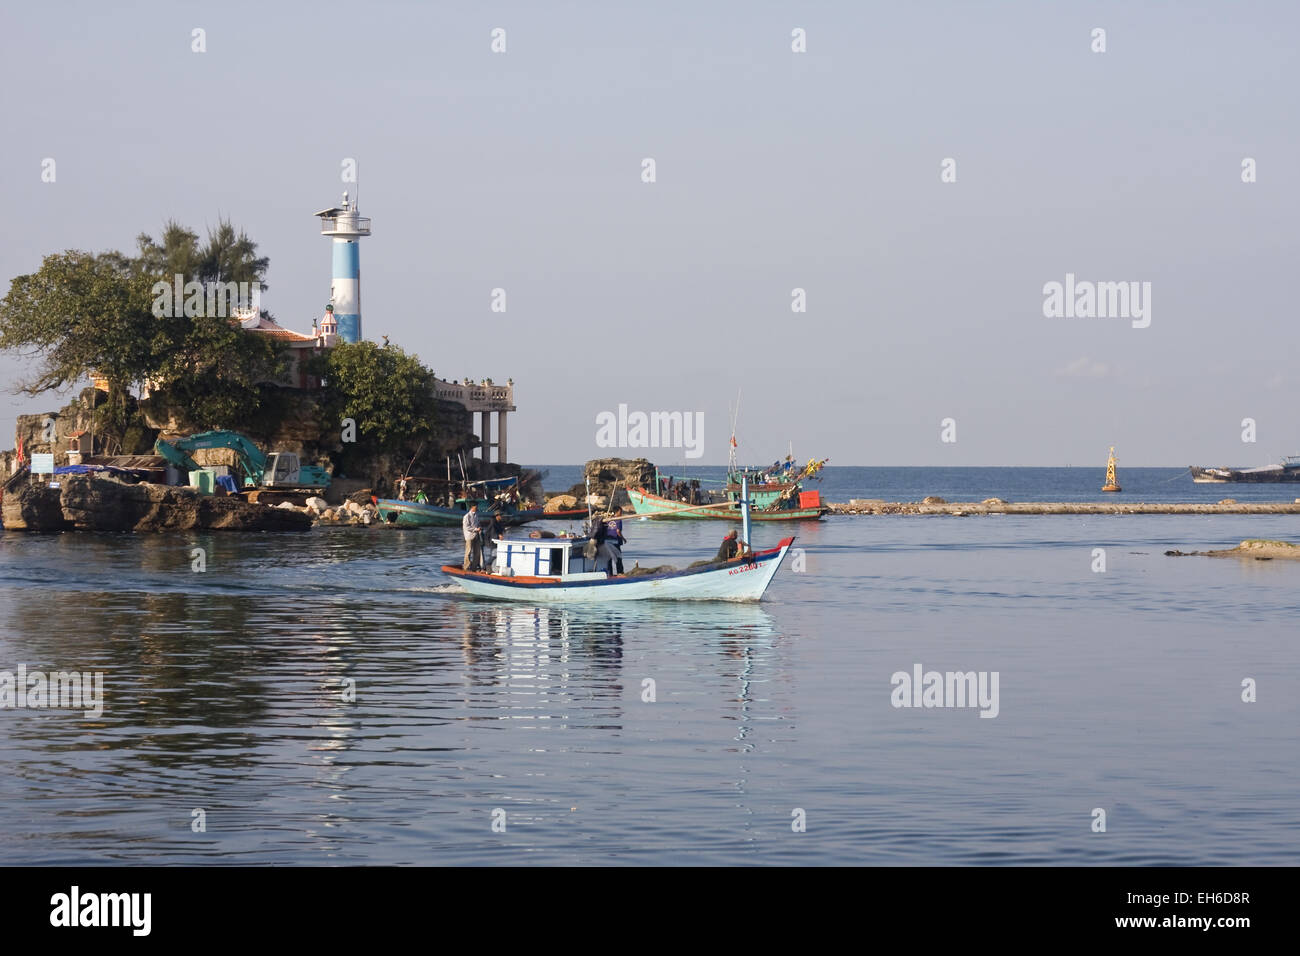 Harbor entrance with the lighthouse of Duong Dong Town on the island Phu Quoc, Vietnam, Southeast Asia Stock Photo